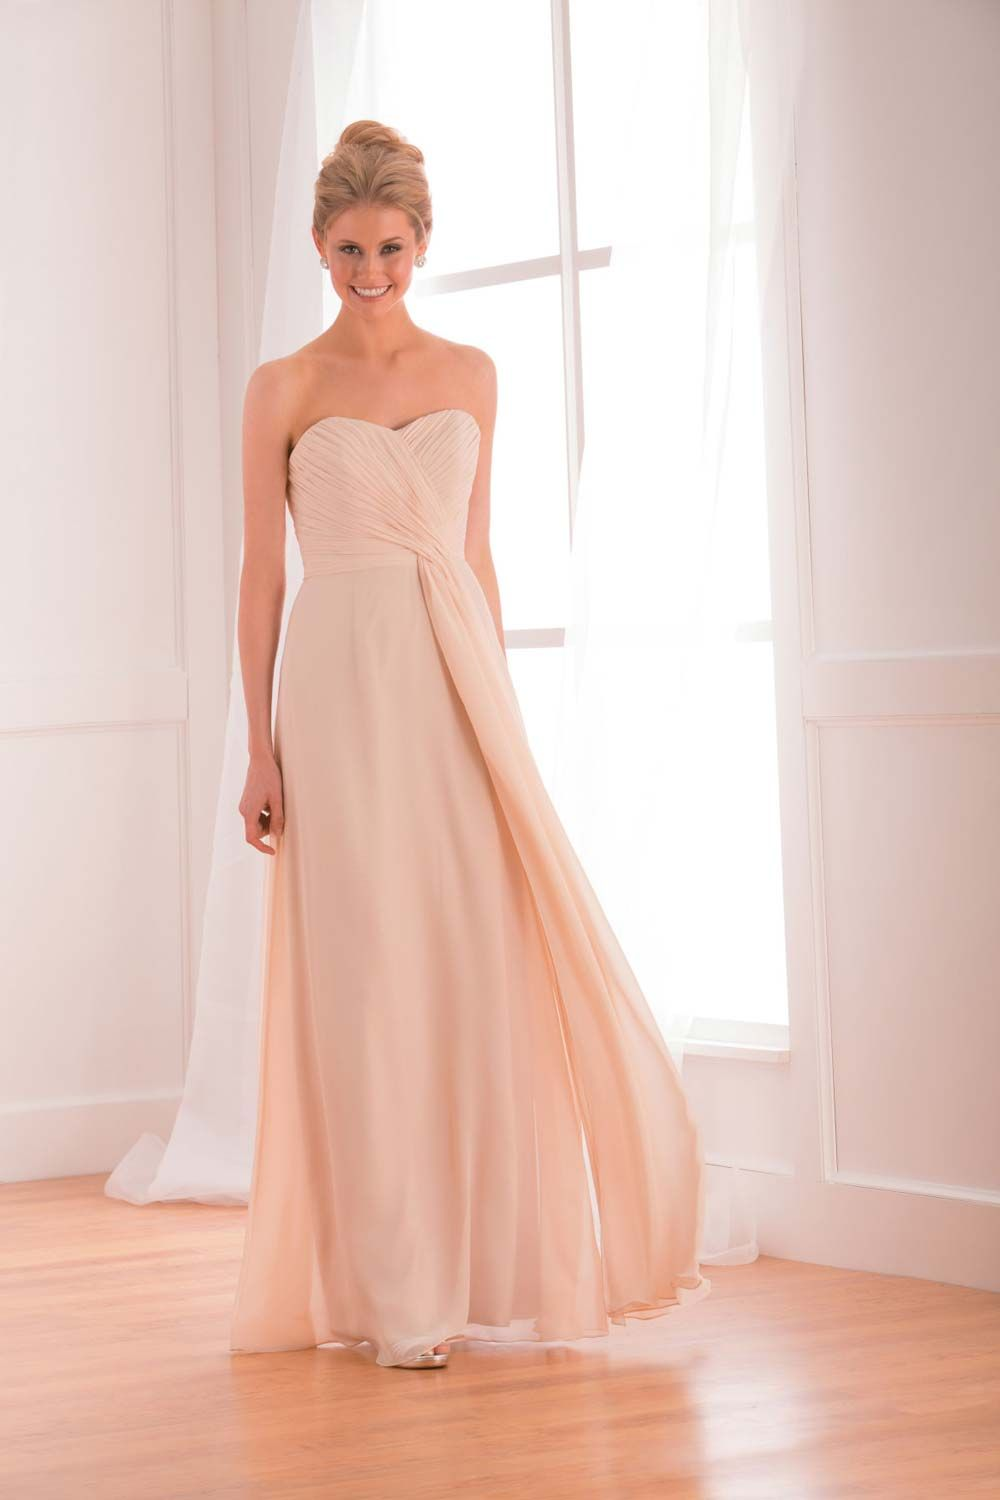 23 pretty peach bridesmaid dresses peach bridesmaid dresses 23 pretty peach bridesmaid dresses ombrellifo Image collections